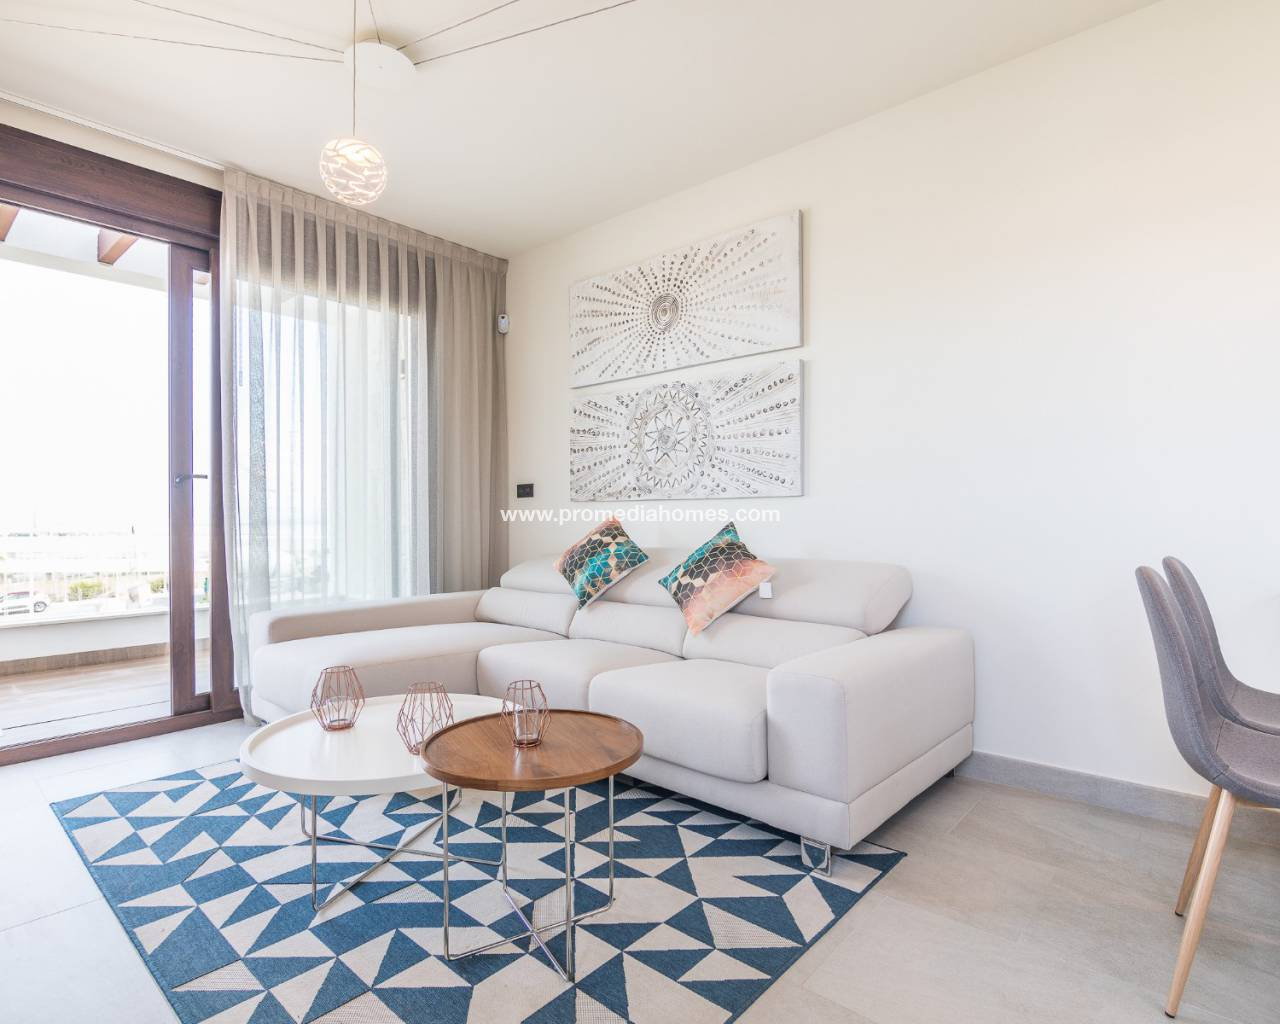 New Build bungalow for sale in Torrevieja